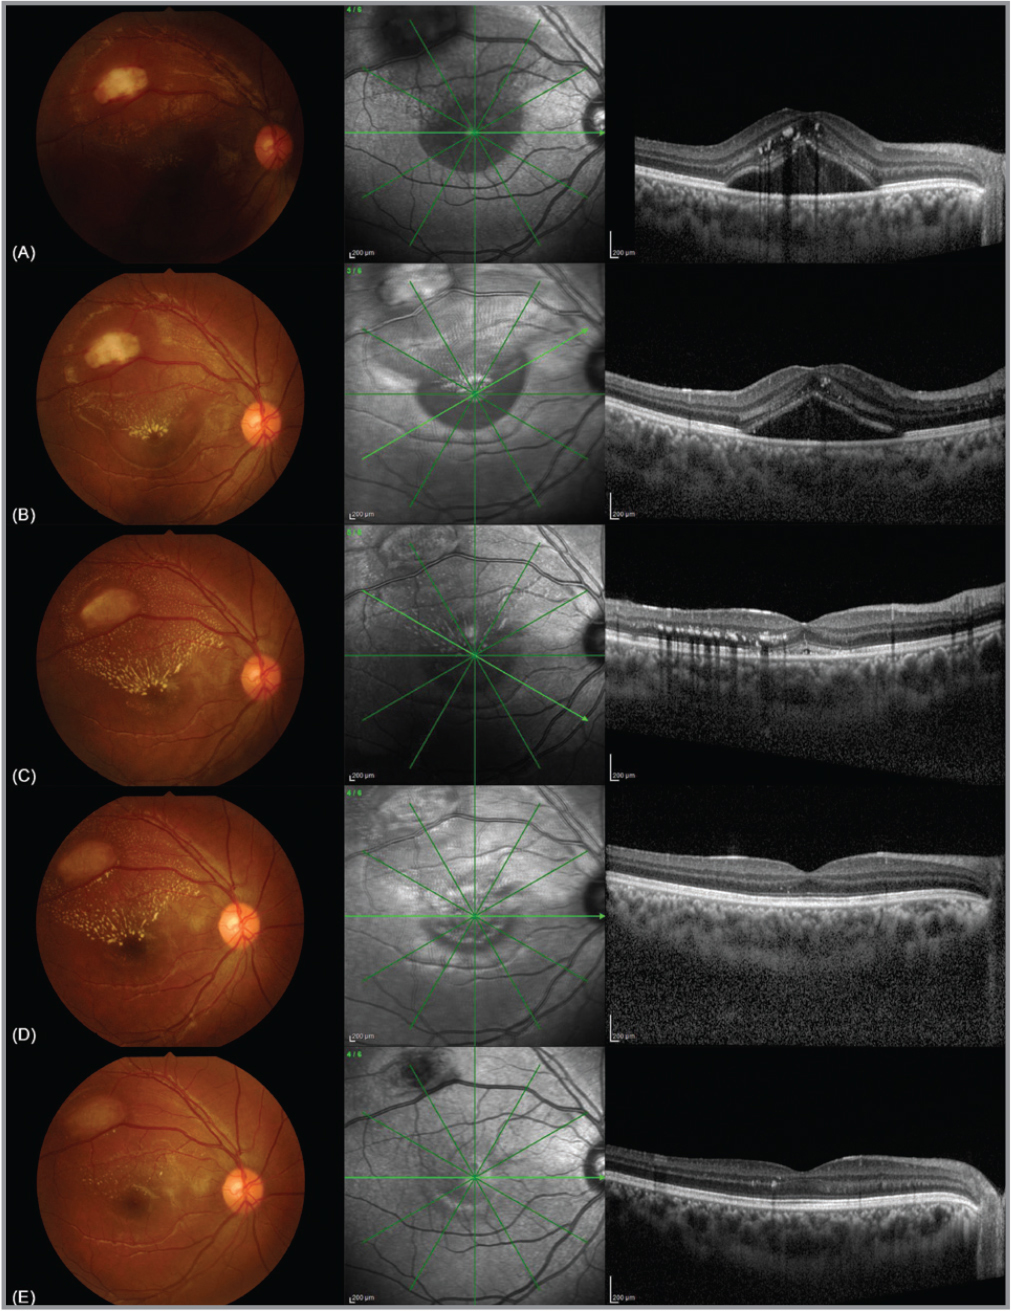 Color fundus and optical coherence tomography images of the macula (A) at presentation, (B) 1-week follow-up, (C) 4-week follow-up, (D) 8-week follow-up, and (E) 10-month follow-up